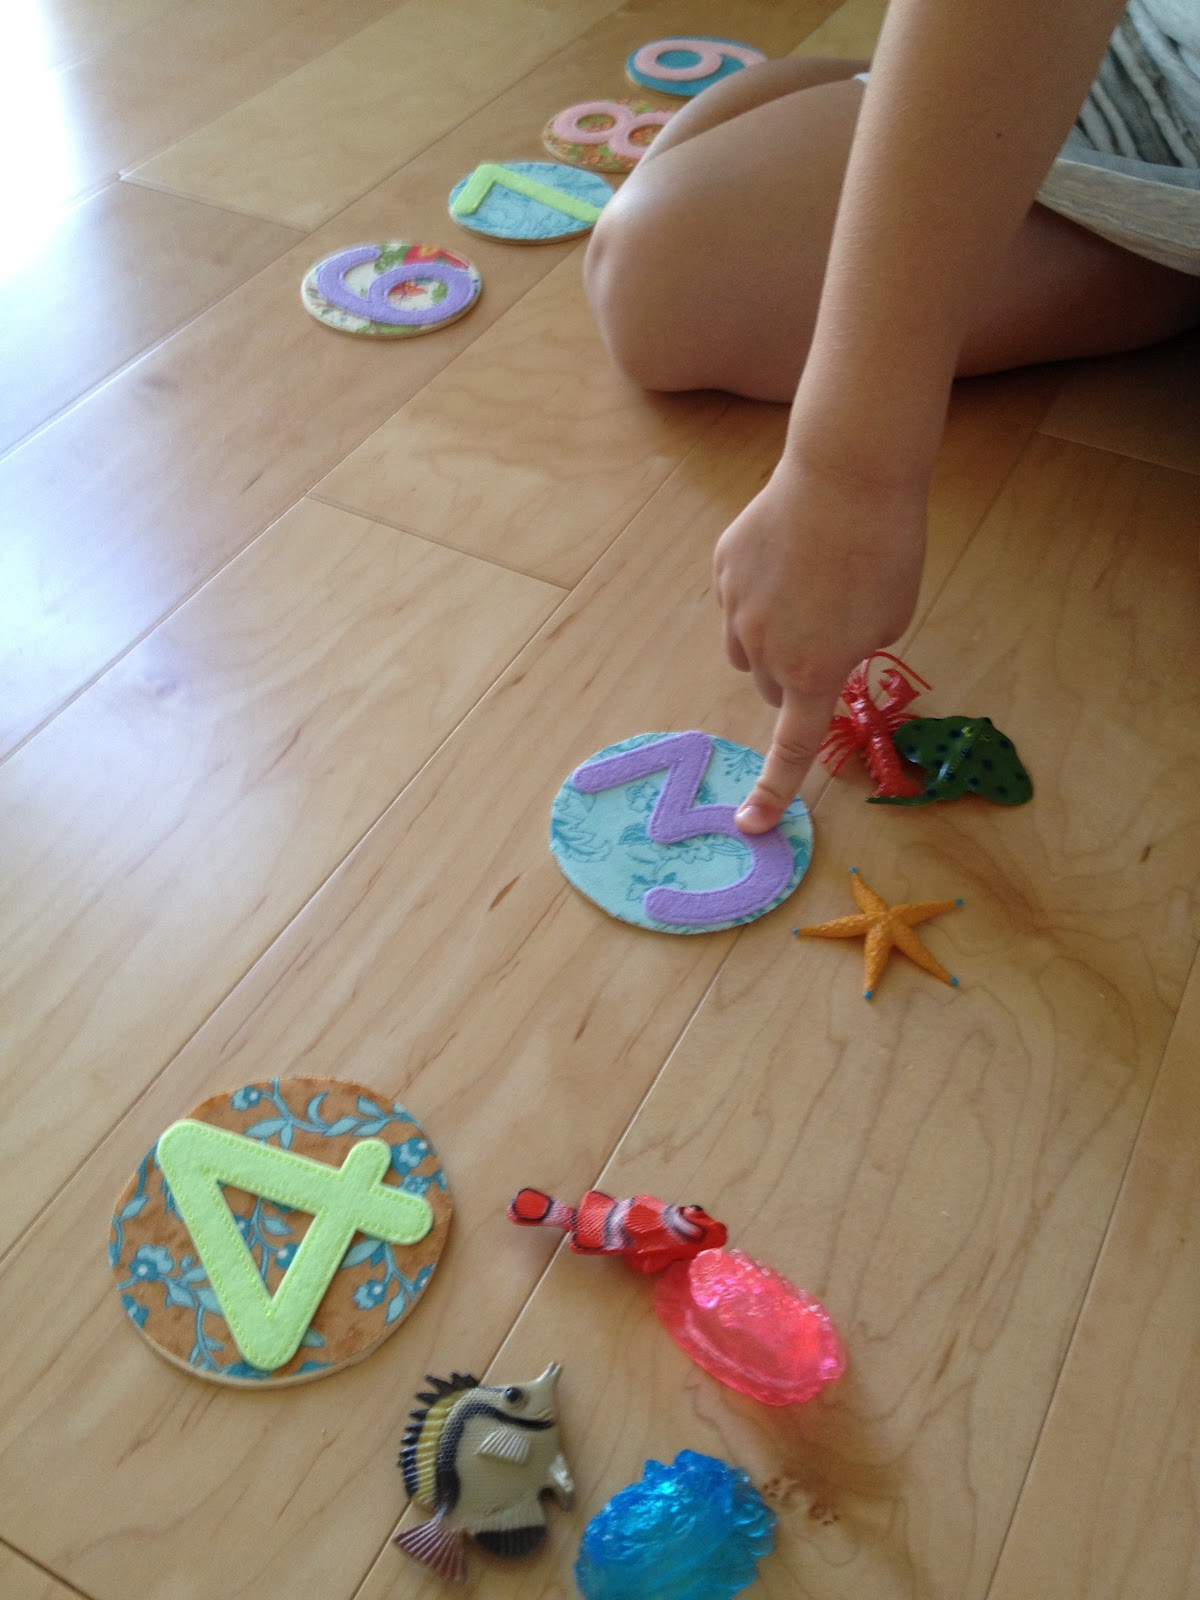 Kats World Telling Addition Stories With Wooden Discs Plastic